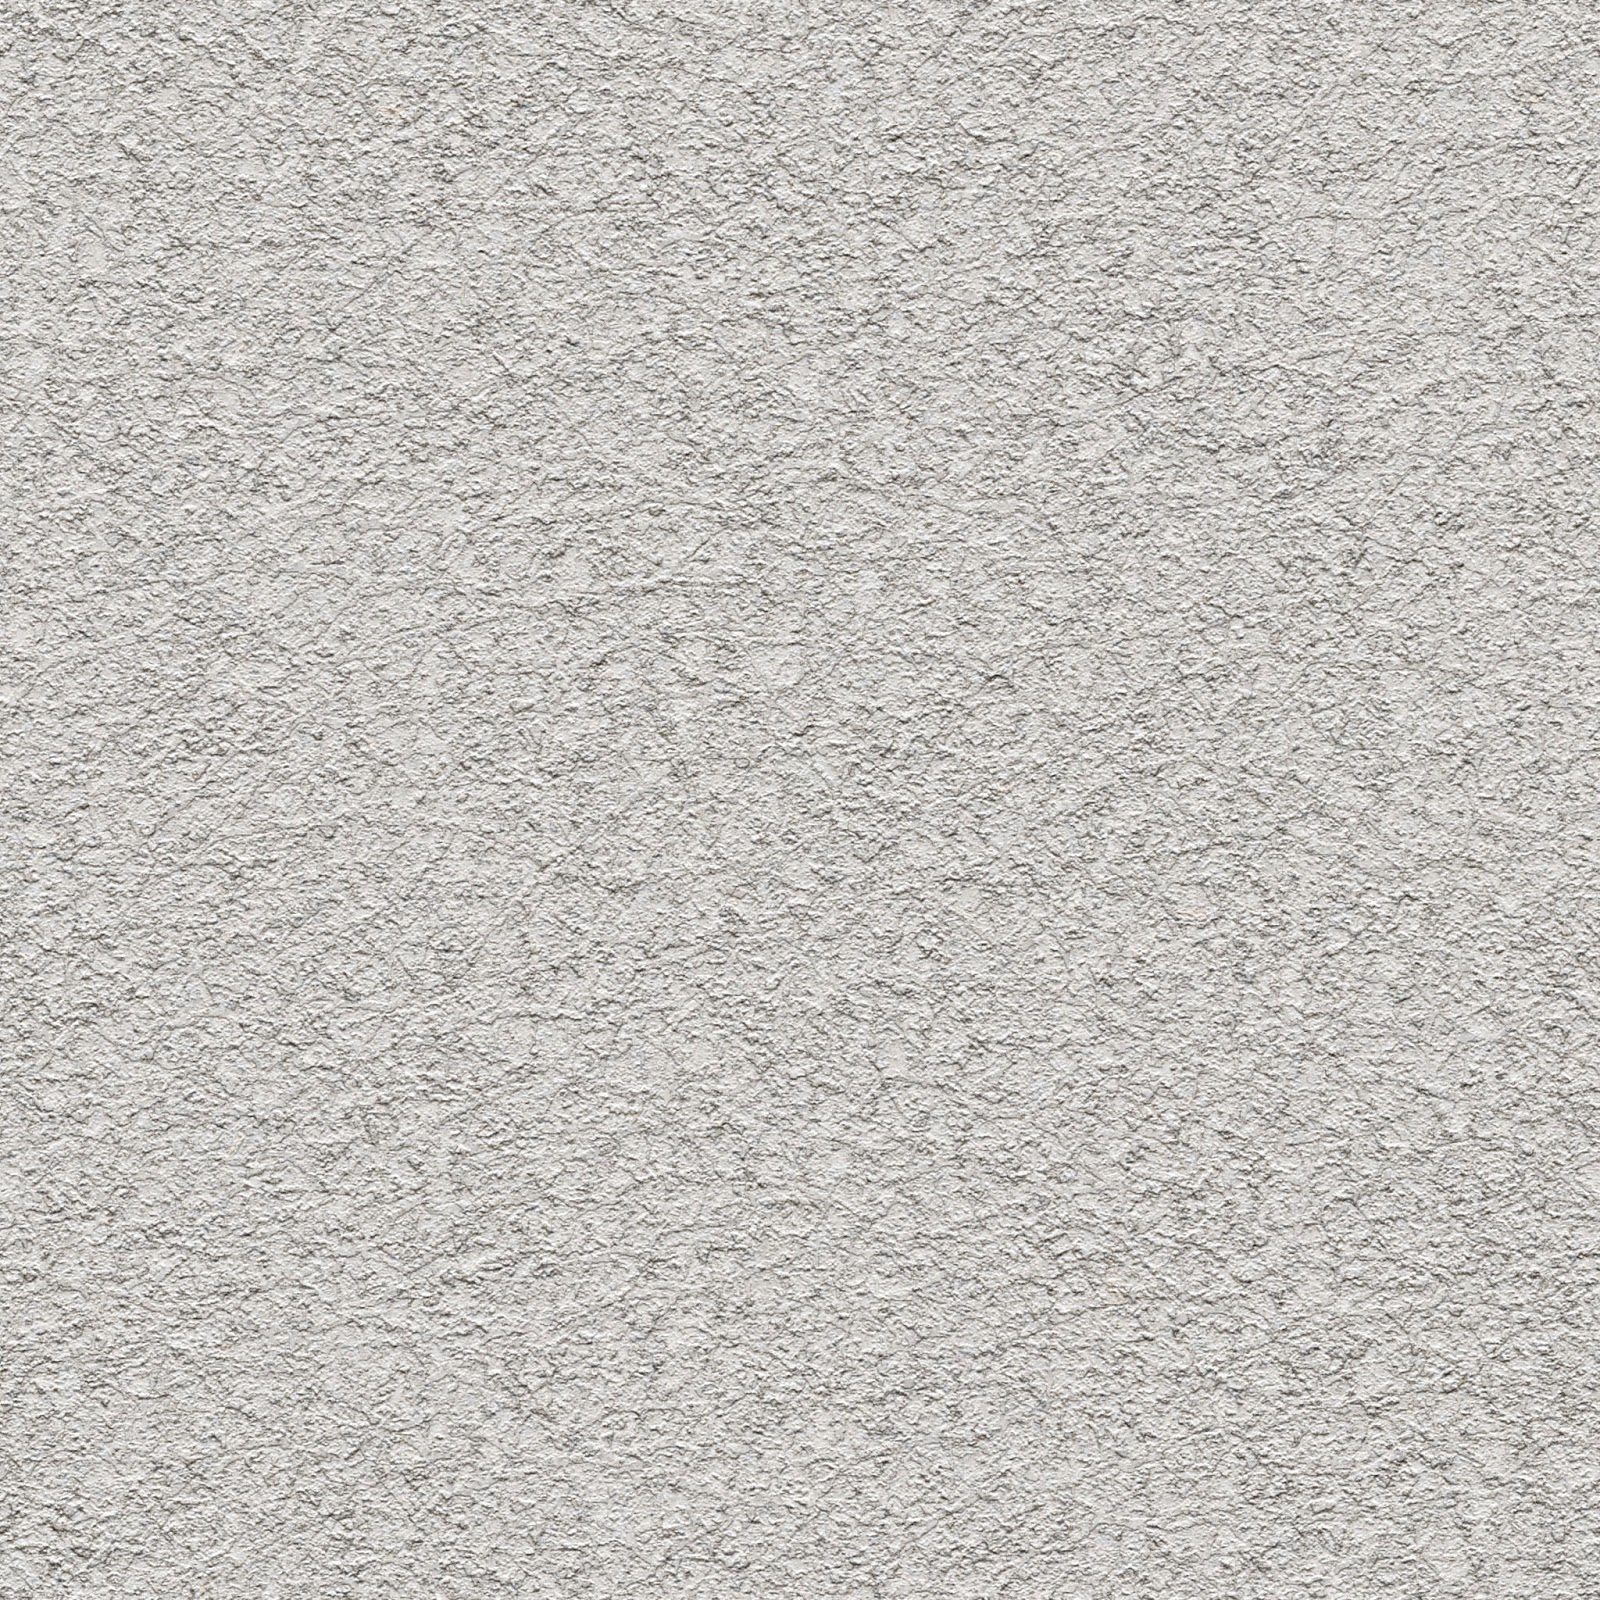 High Resolution Seamless Textures April 2014